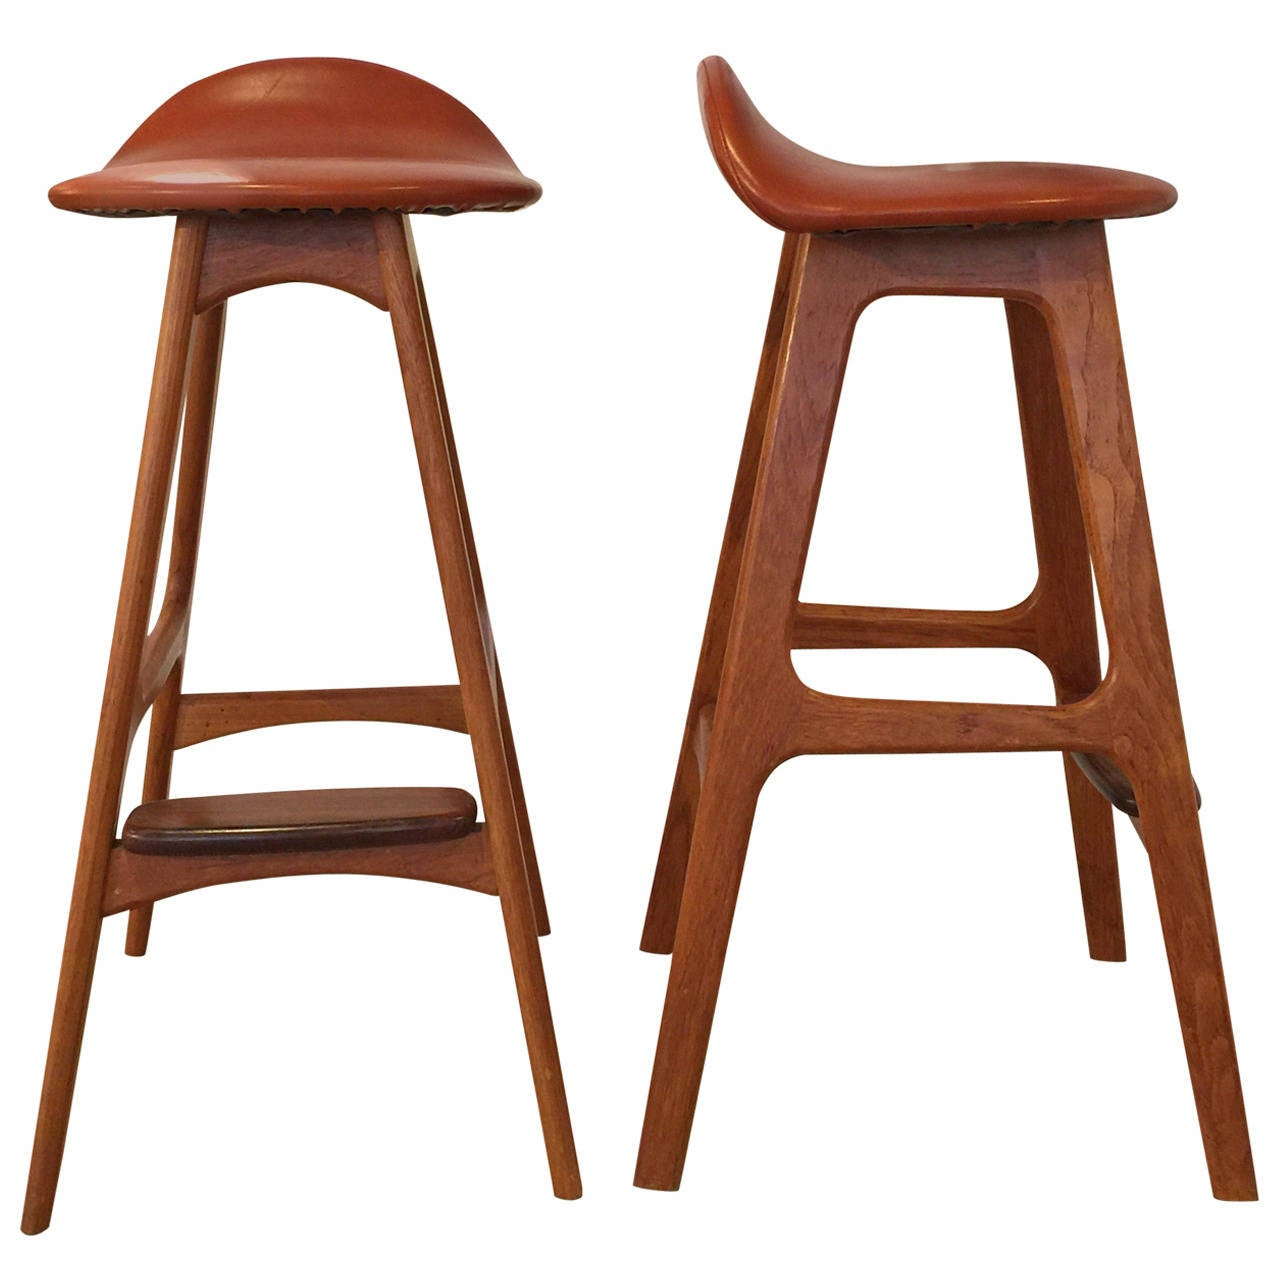 Pair Of Vintage Danish Teak Bar Stools By Eric Buck At 1stdibs